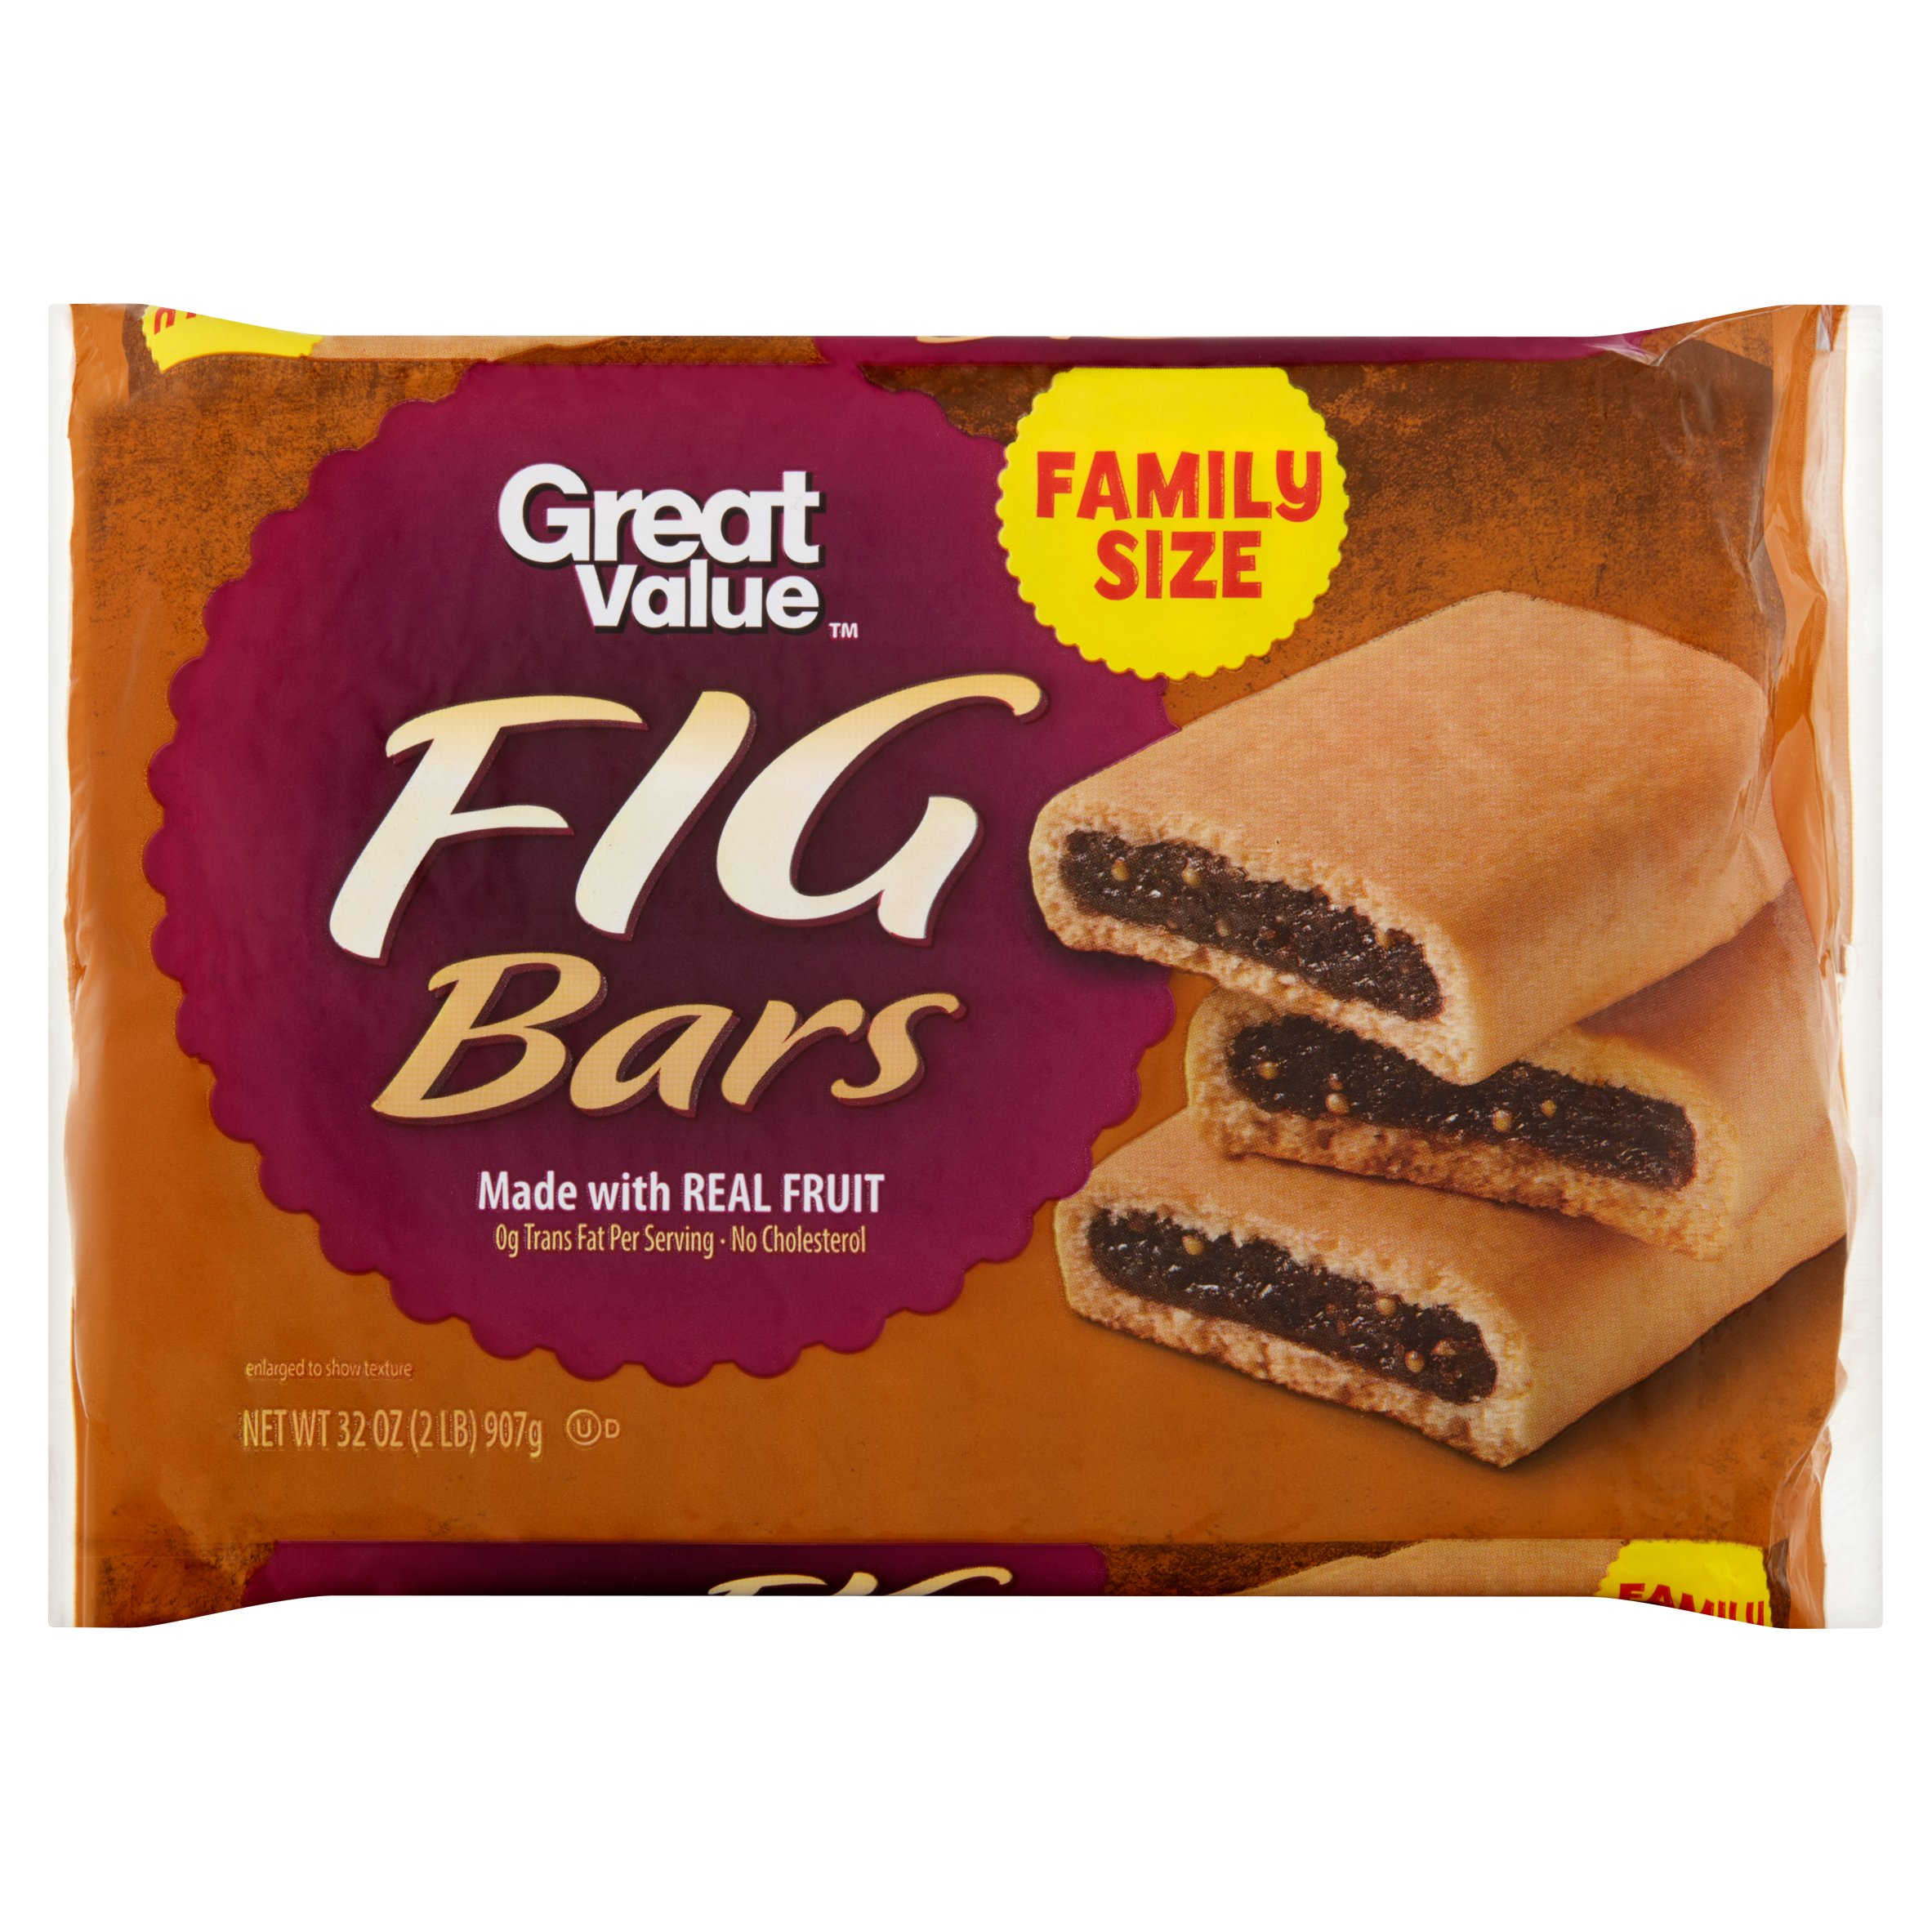 Great Value Fig Bars, Family Size, 32 oz by Wal-Mart Stores, Inc.